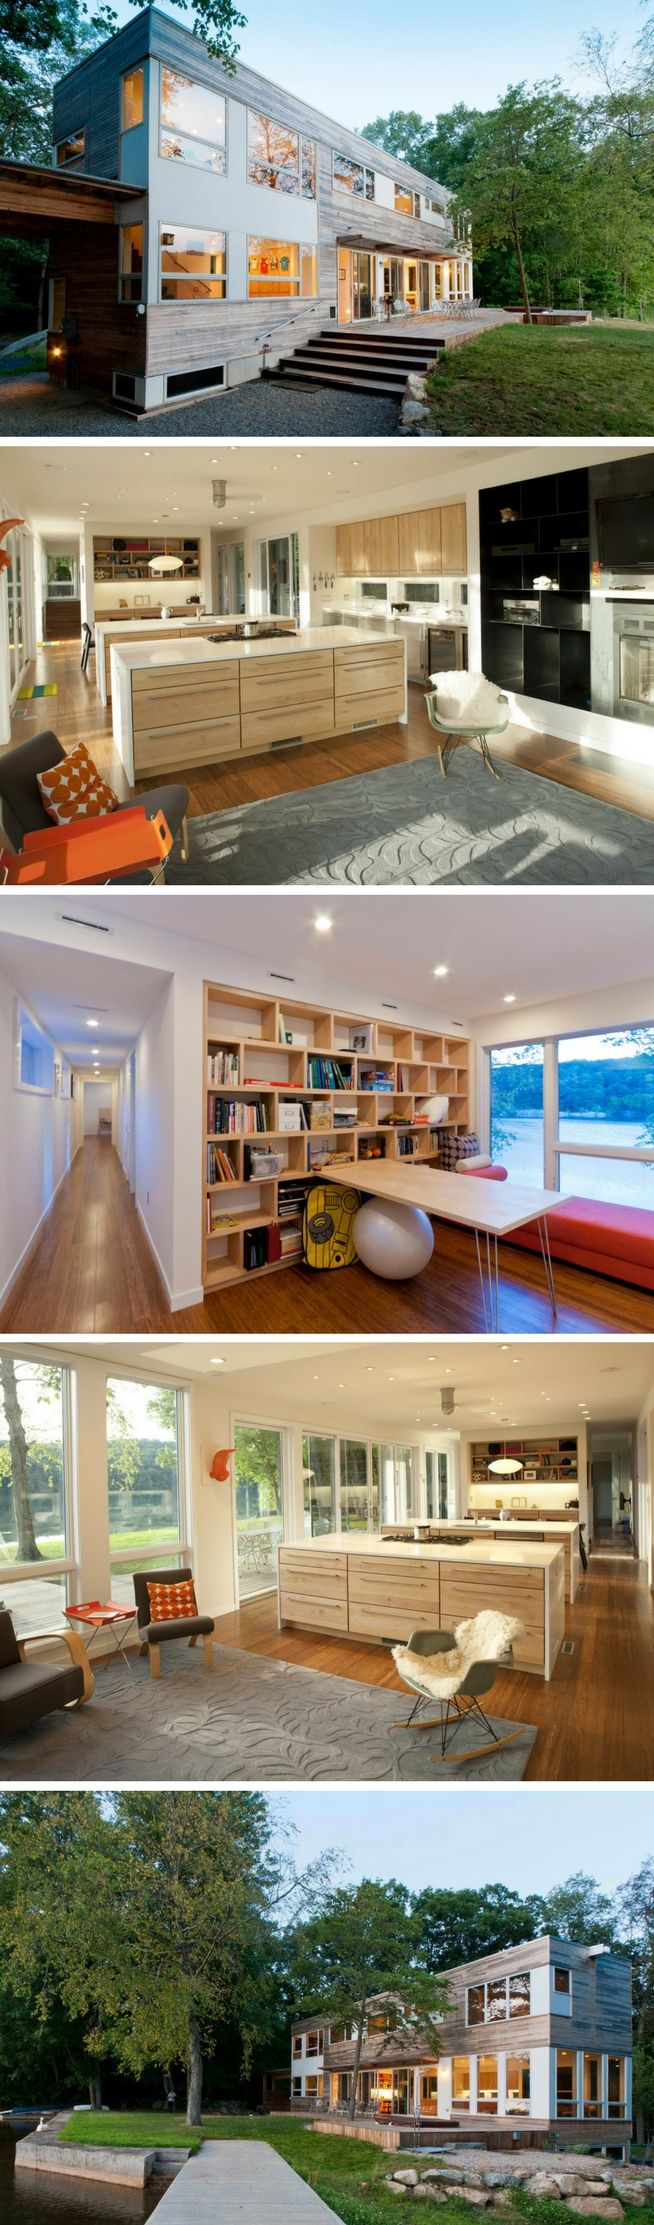 Lake iosco shipping container house mod cabins pinterest lakes